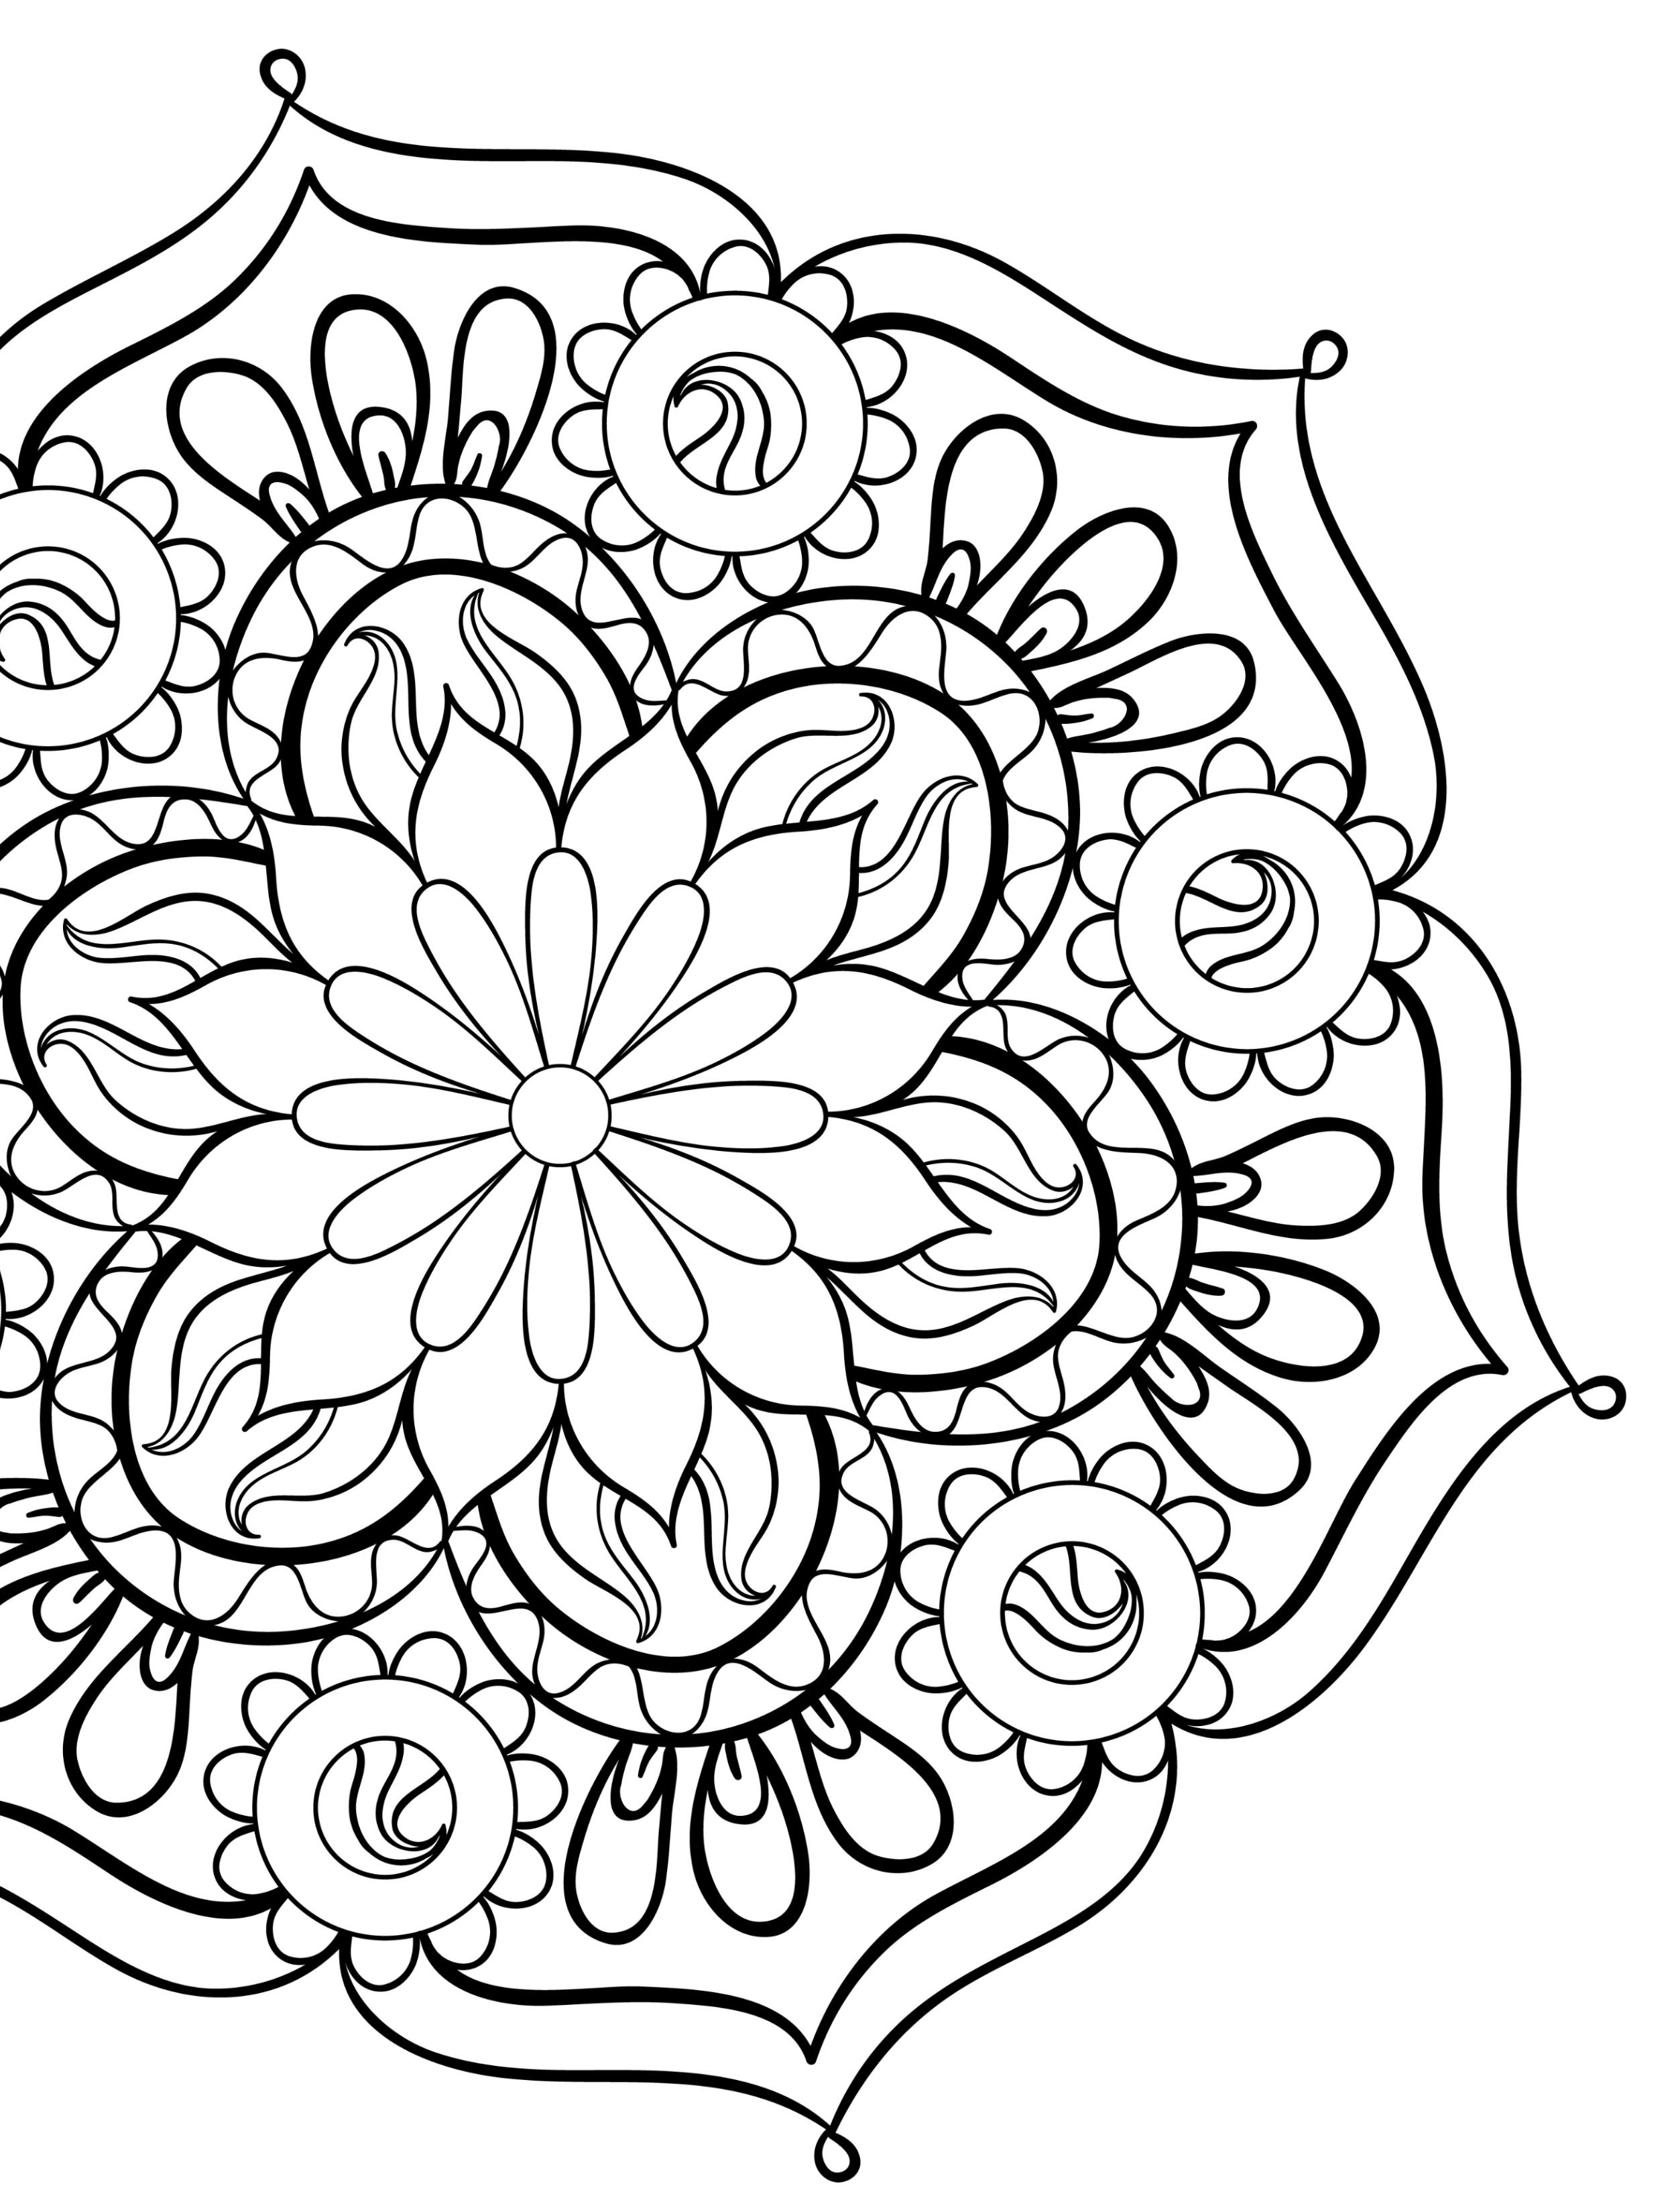 beautiful mandala coloring pages for free download | crafts | Pinterest